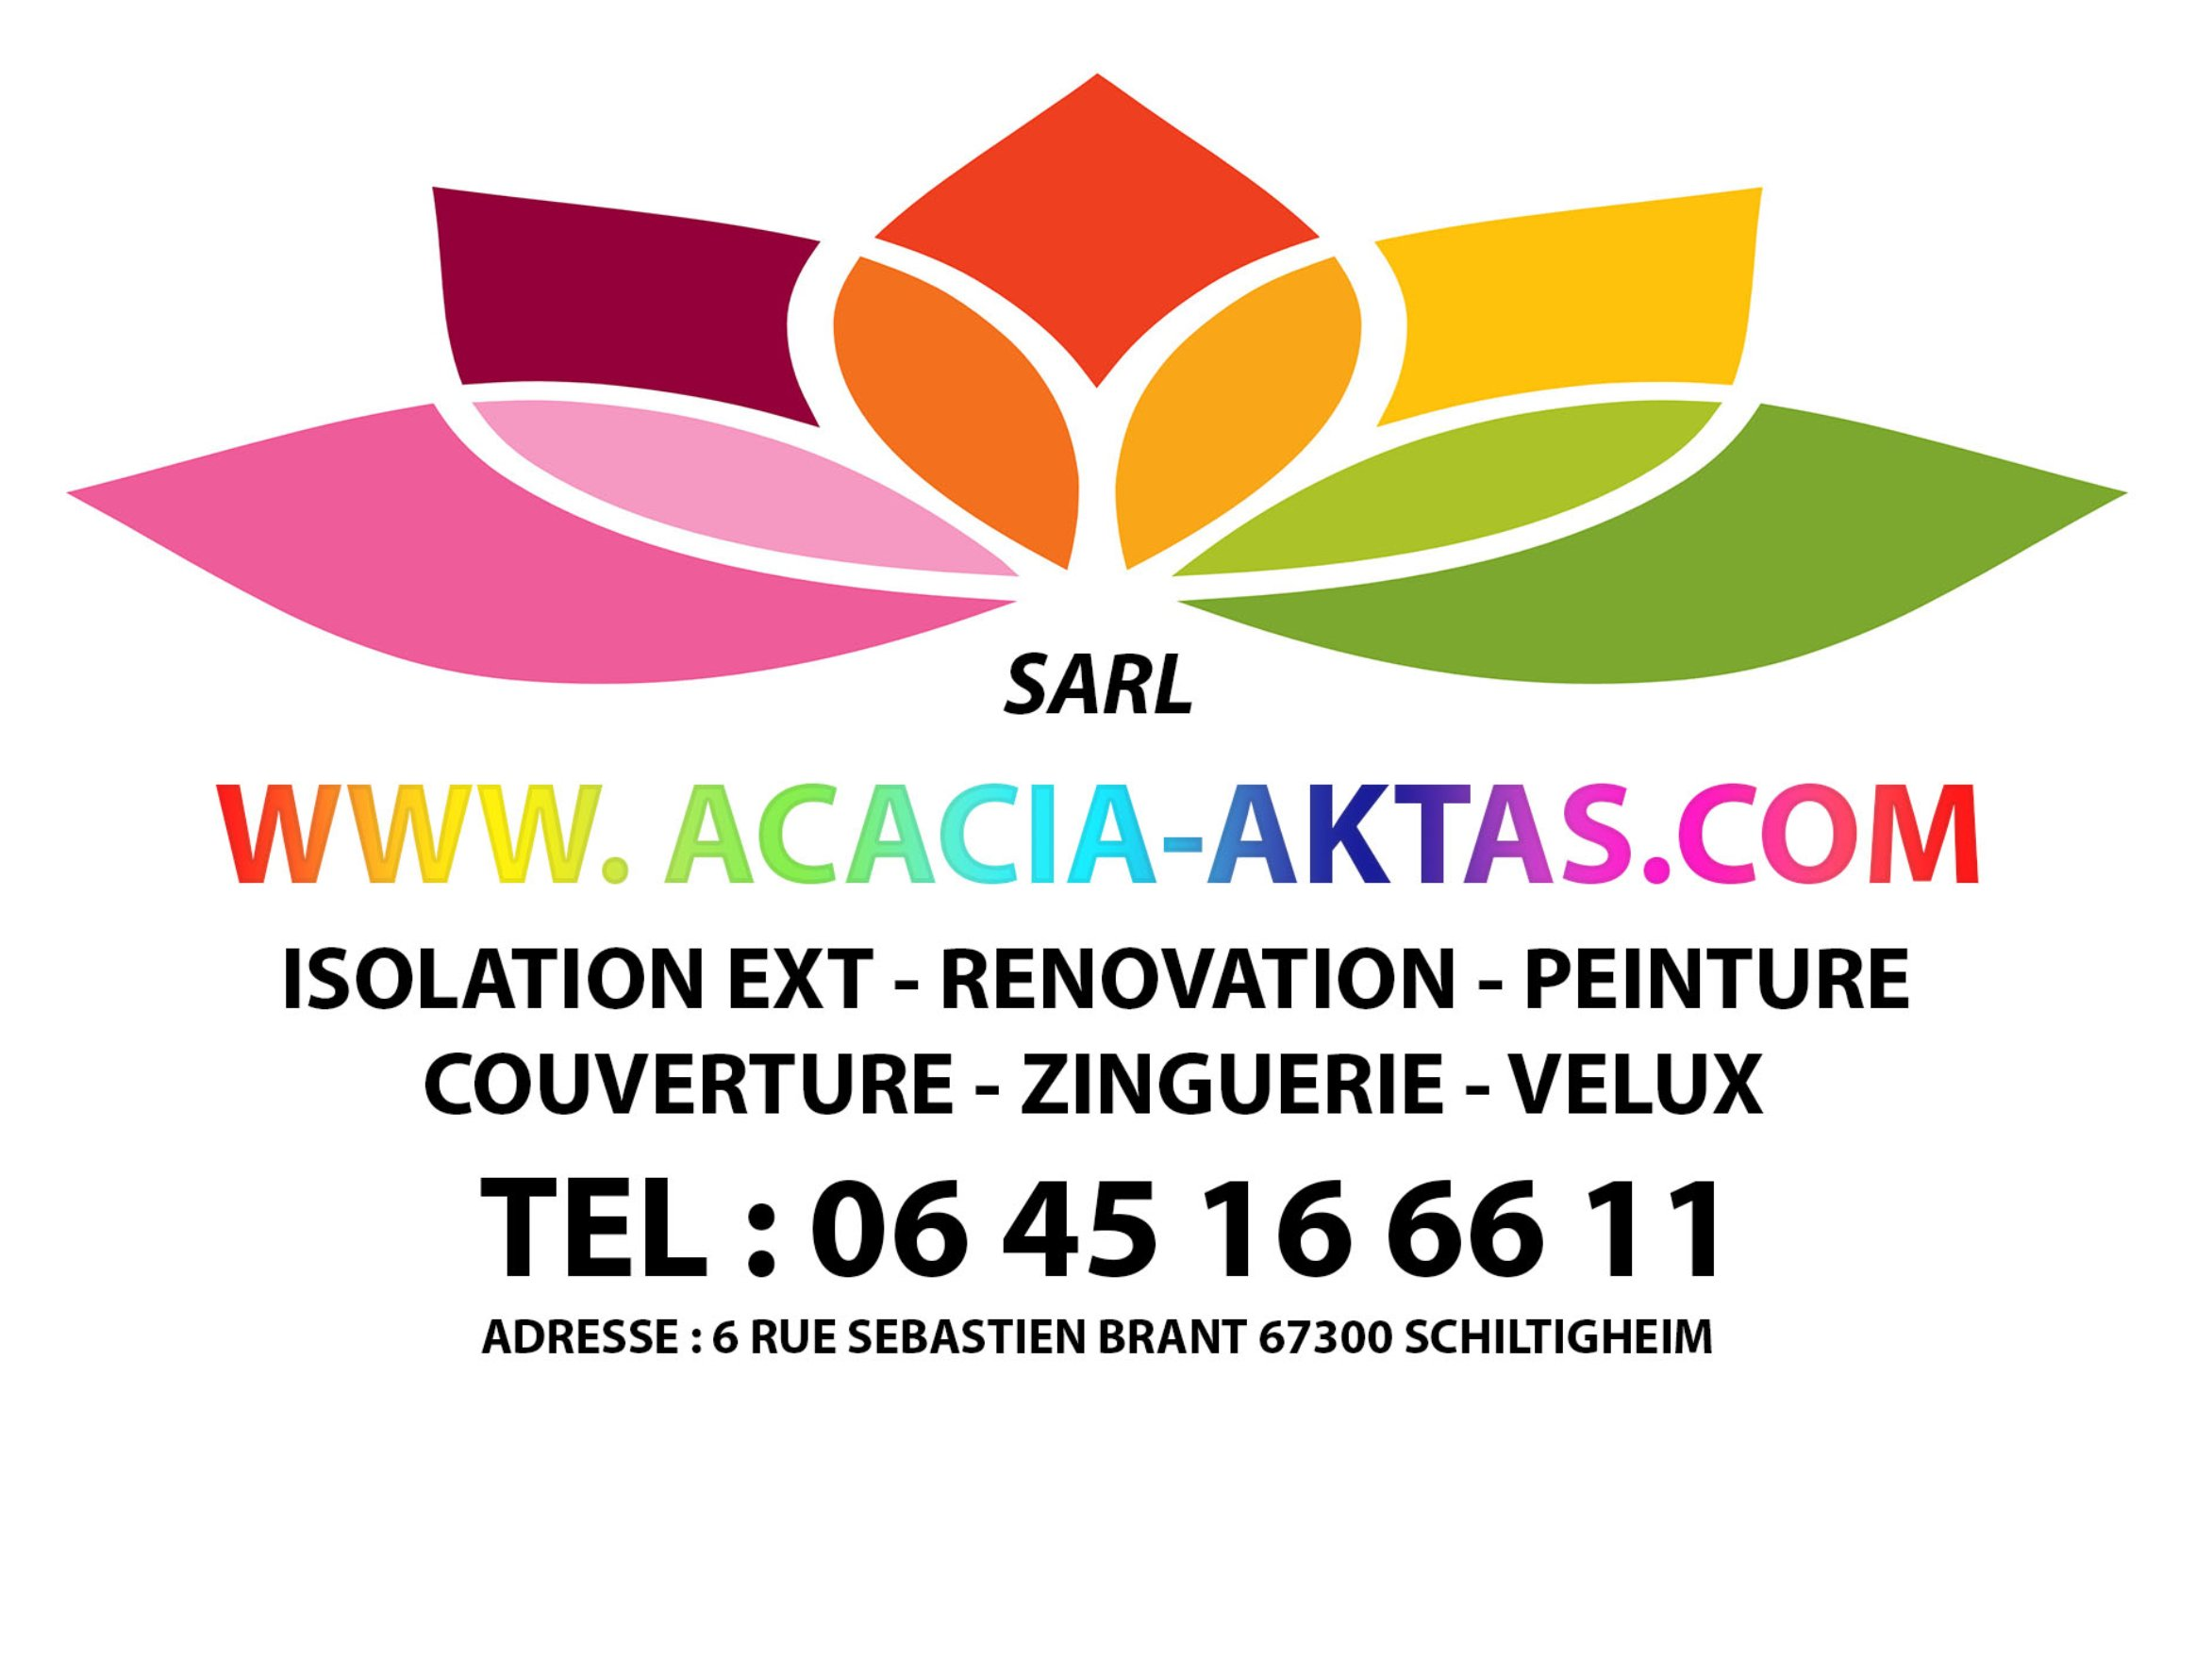 ACACIA AKTAS carrelage et dallage (vente, pose, traitement)